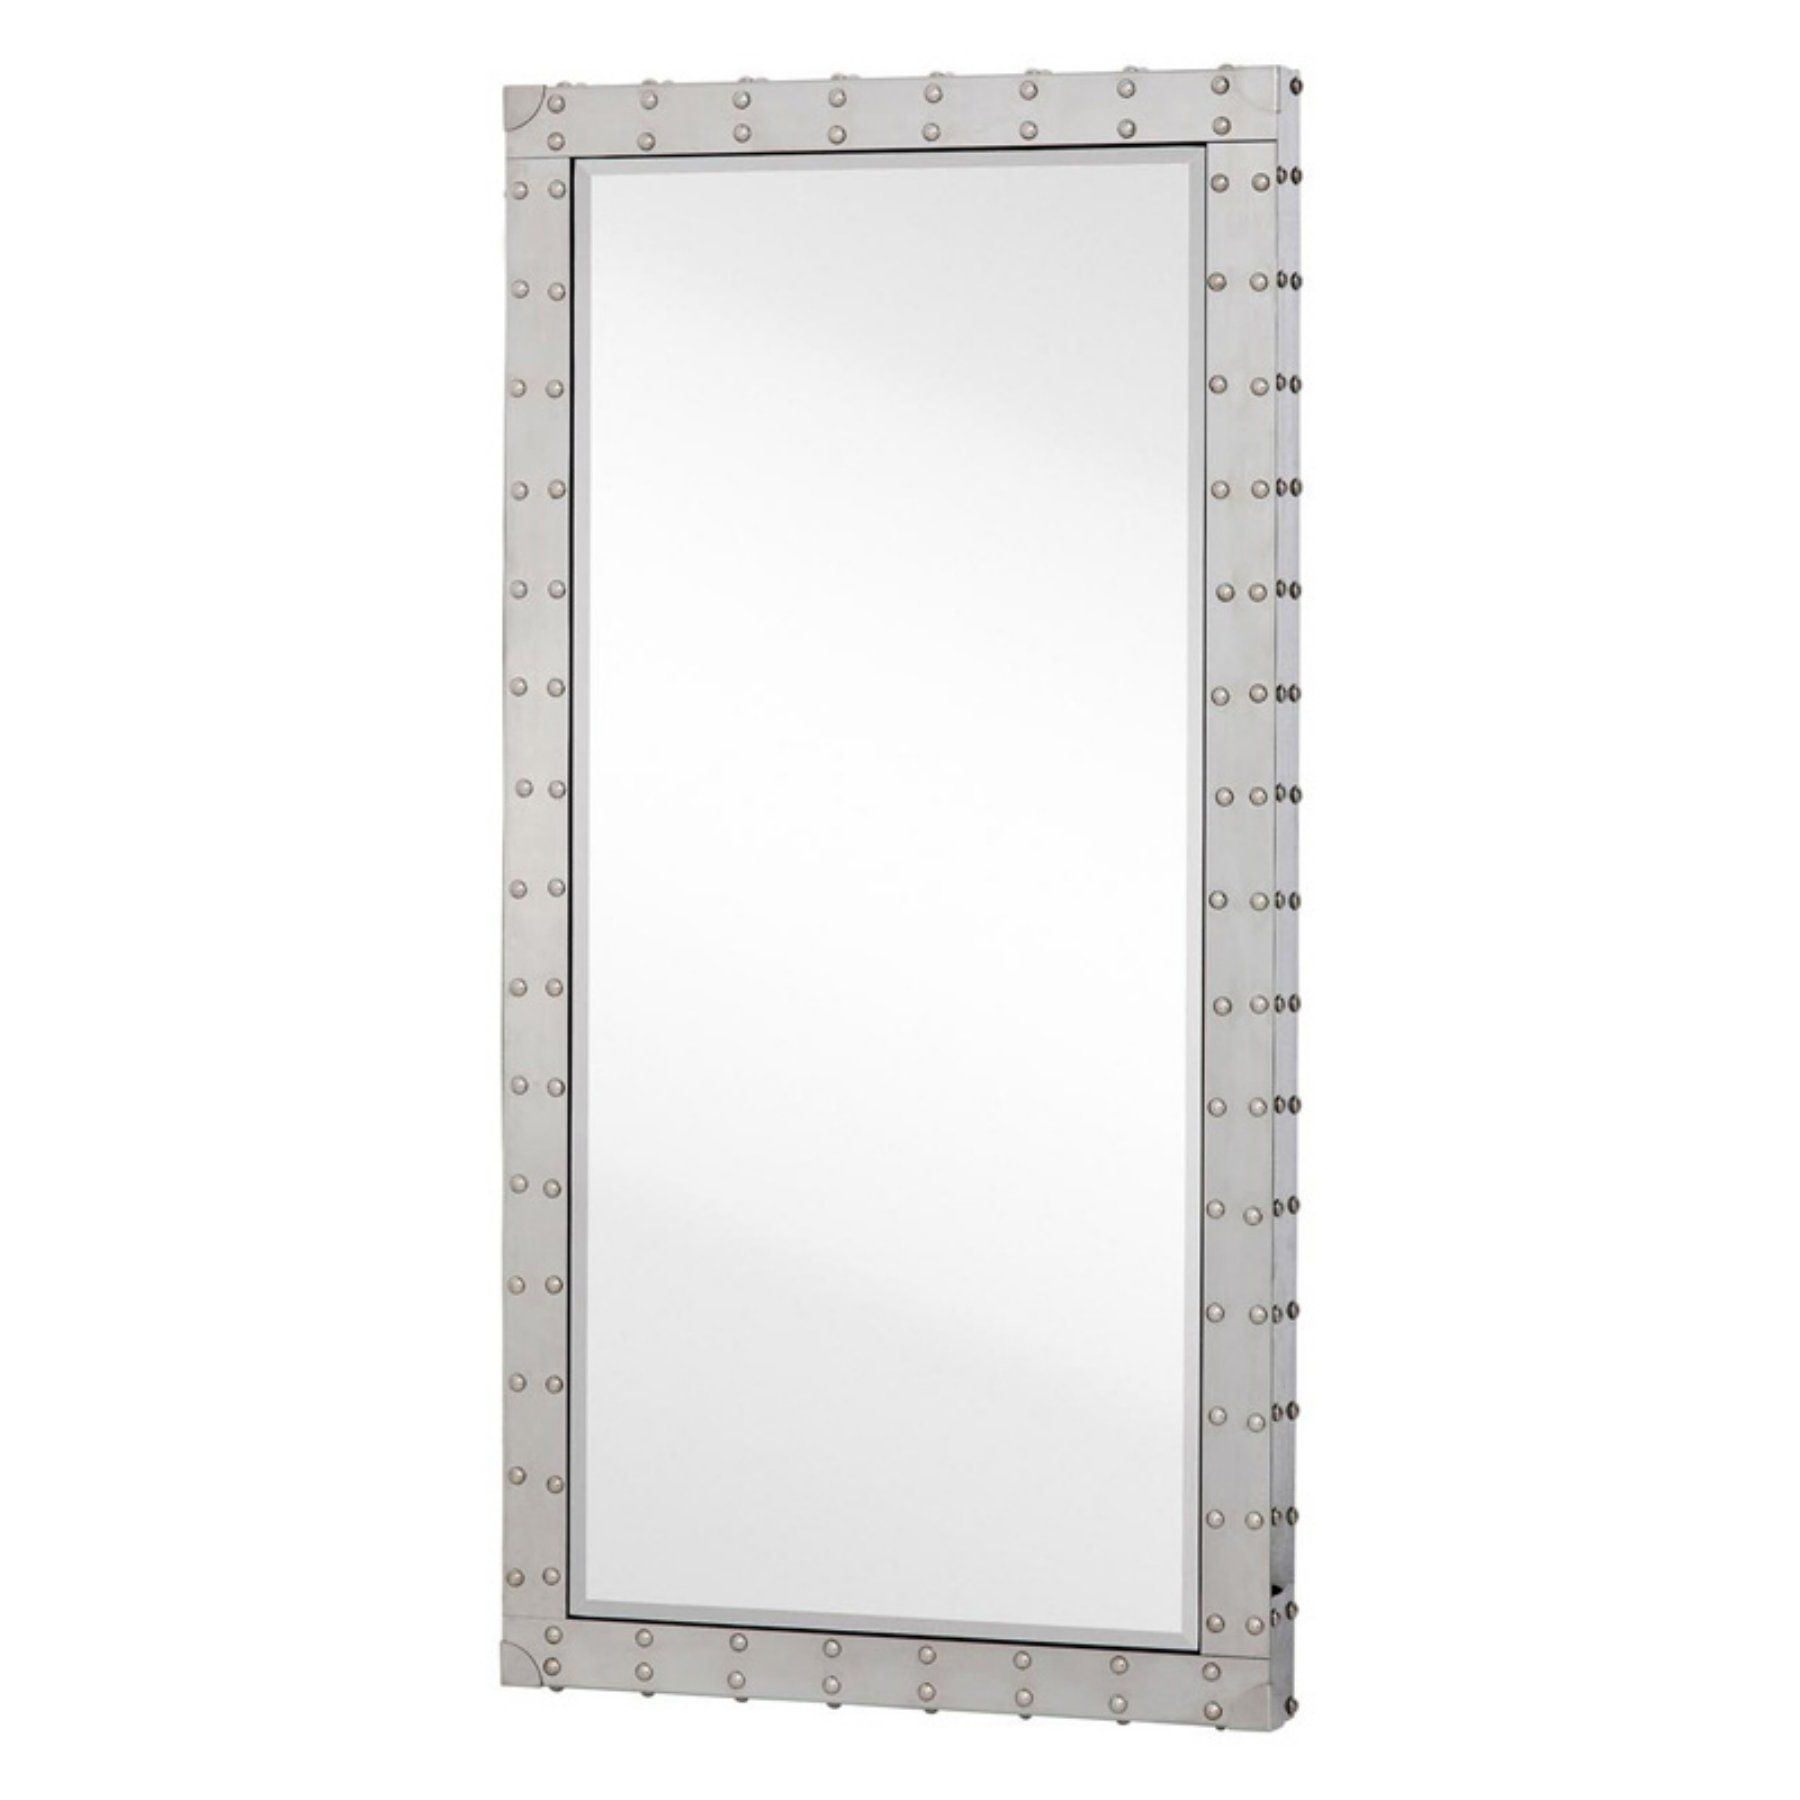 Modern & Contemporary Beveled Wall Mirrors Inside Current Majestic Modern Beveled Wall Mirror – 2328 B (View 16 of 20)